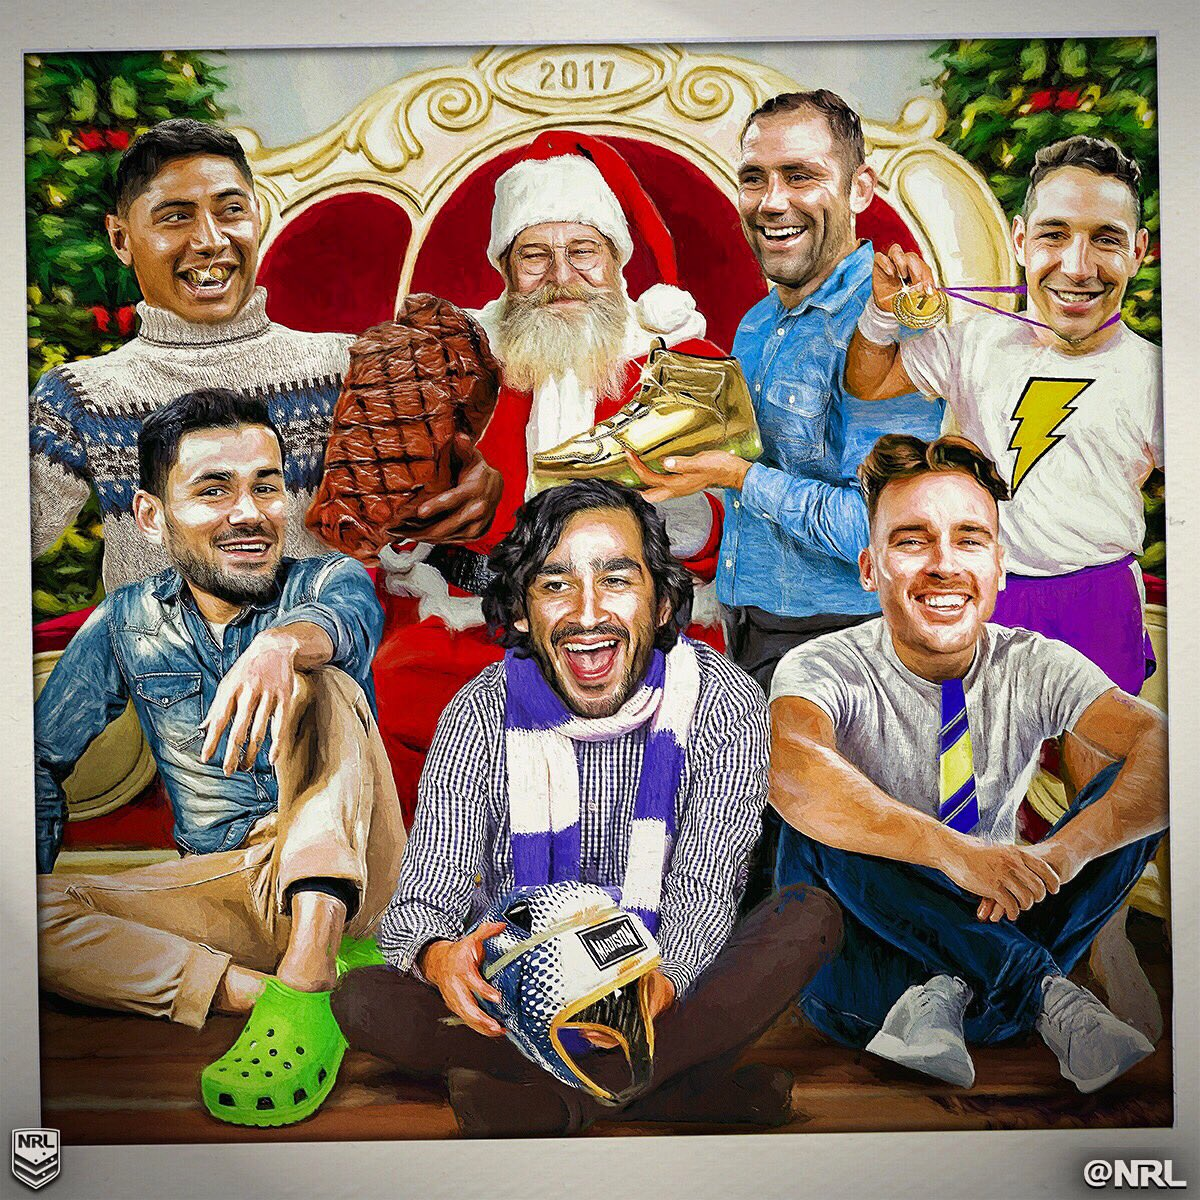 Merry Christmas! 🎅🏼🎄🎁   #NRL https://t.co/Z7sztTvf1g